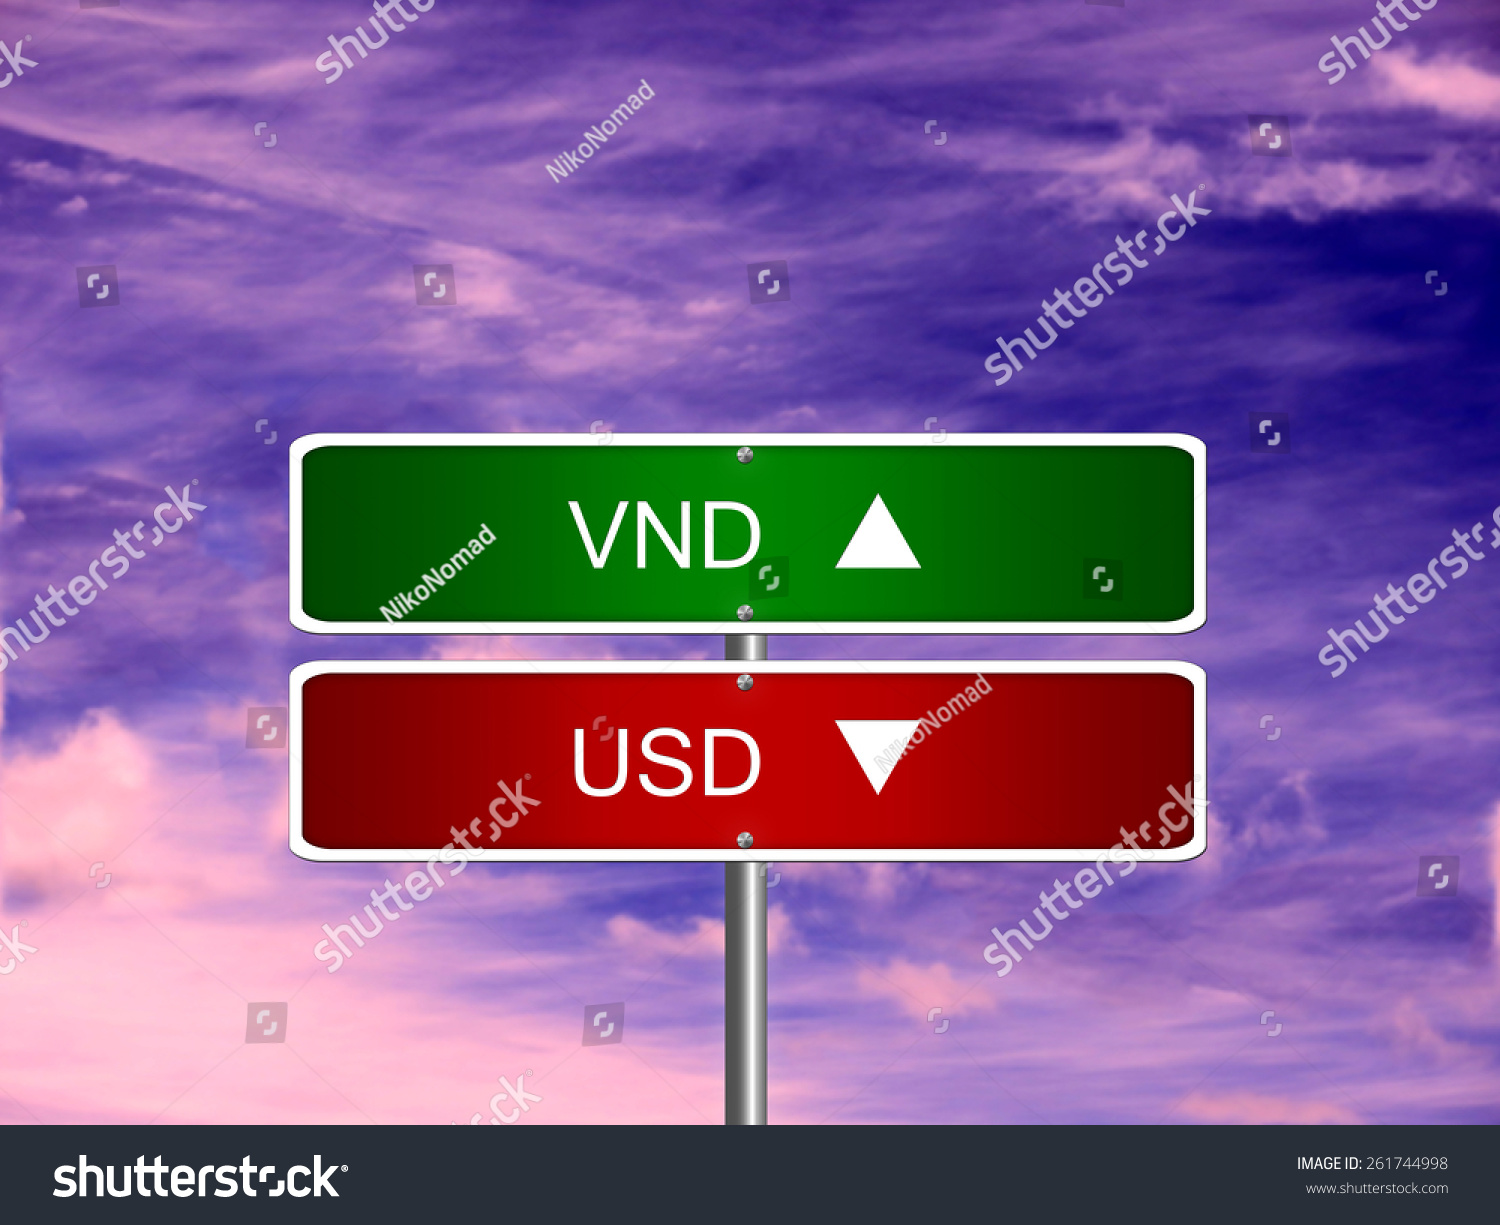 Vietnam dong forex rate